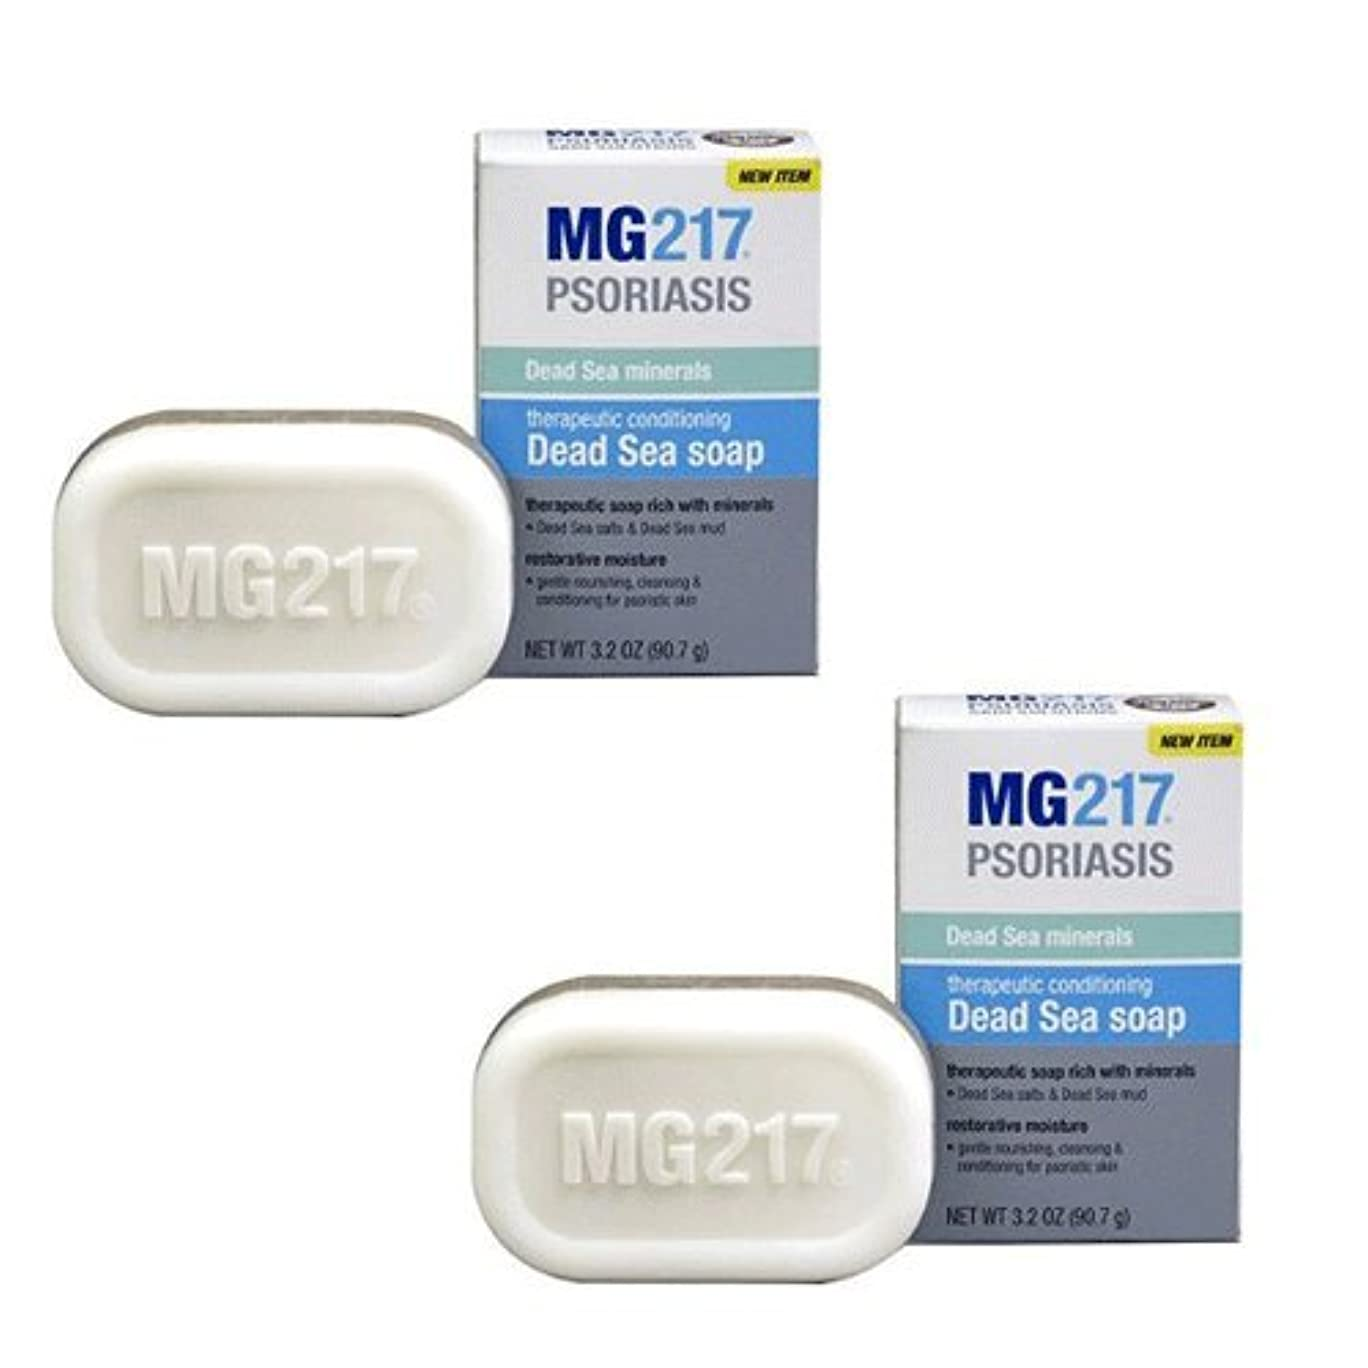 2個セット 死海の泥とミネラルたっぷり MG217ソープ 90g MG217 Psoriasis Therapeutic Conditioning Dead Sea Bar Soap